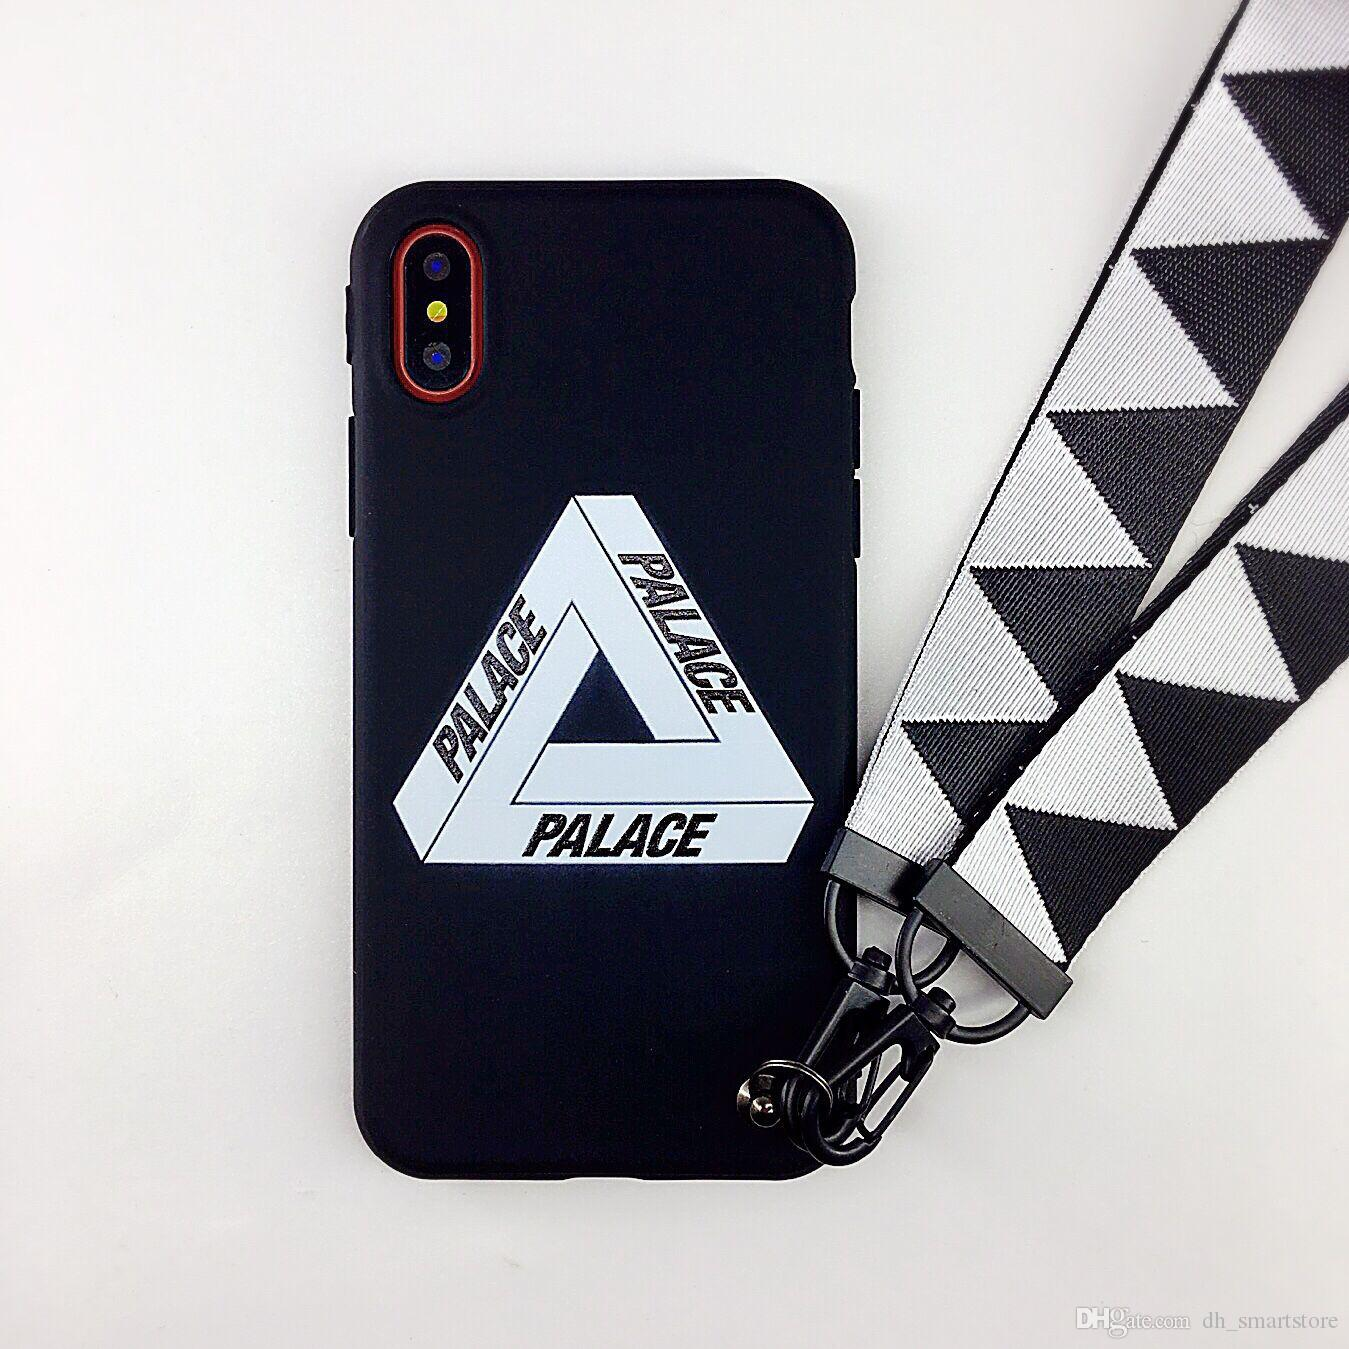 coque iphone 7 palace